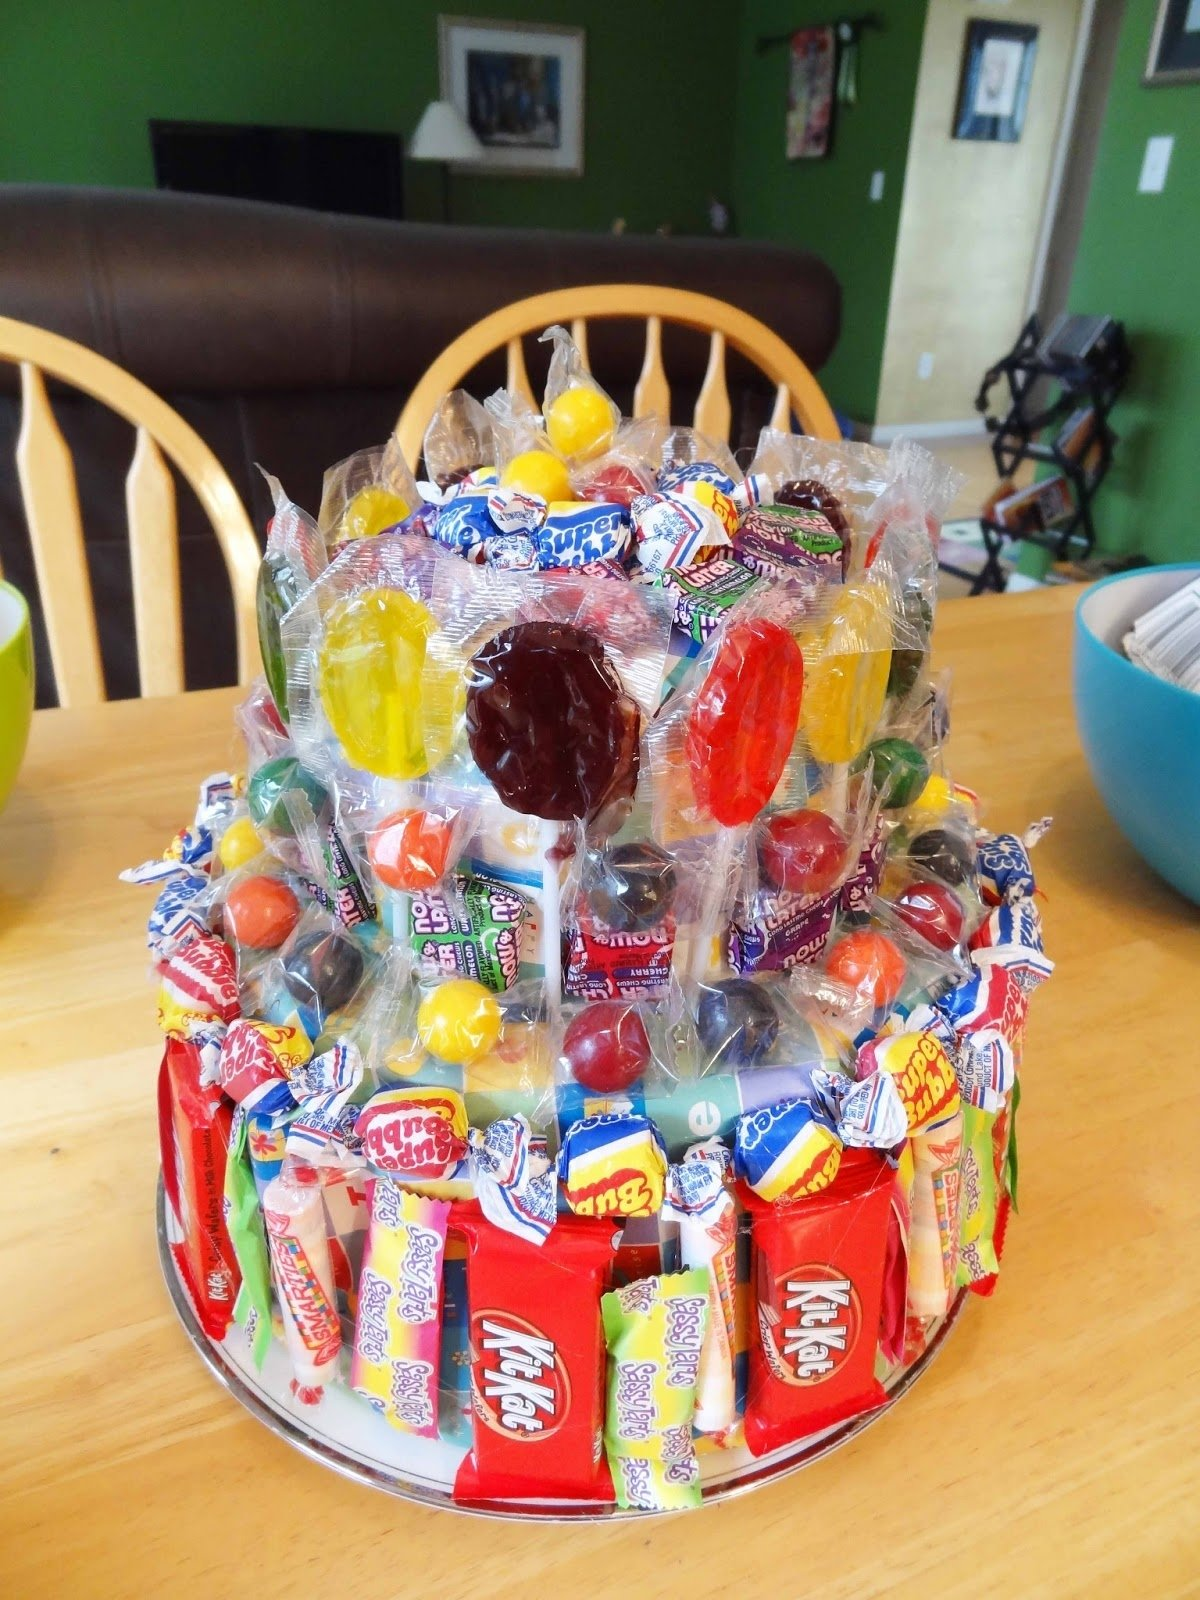 10 Nice Birthday Party Ideas For Teenage Girls 14 teen birthday party crafty leslies blog 1